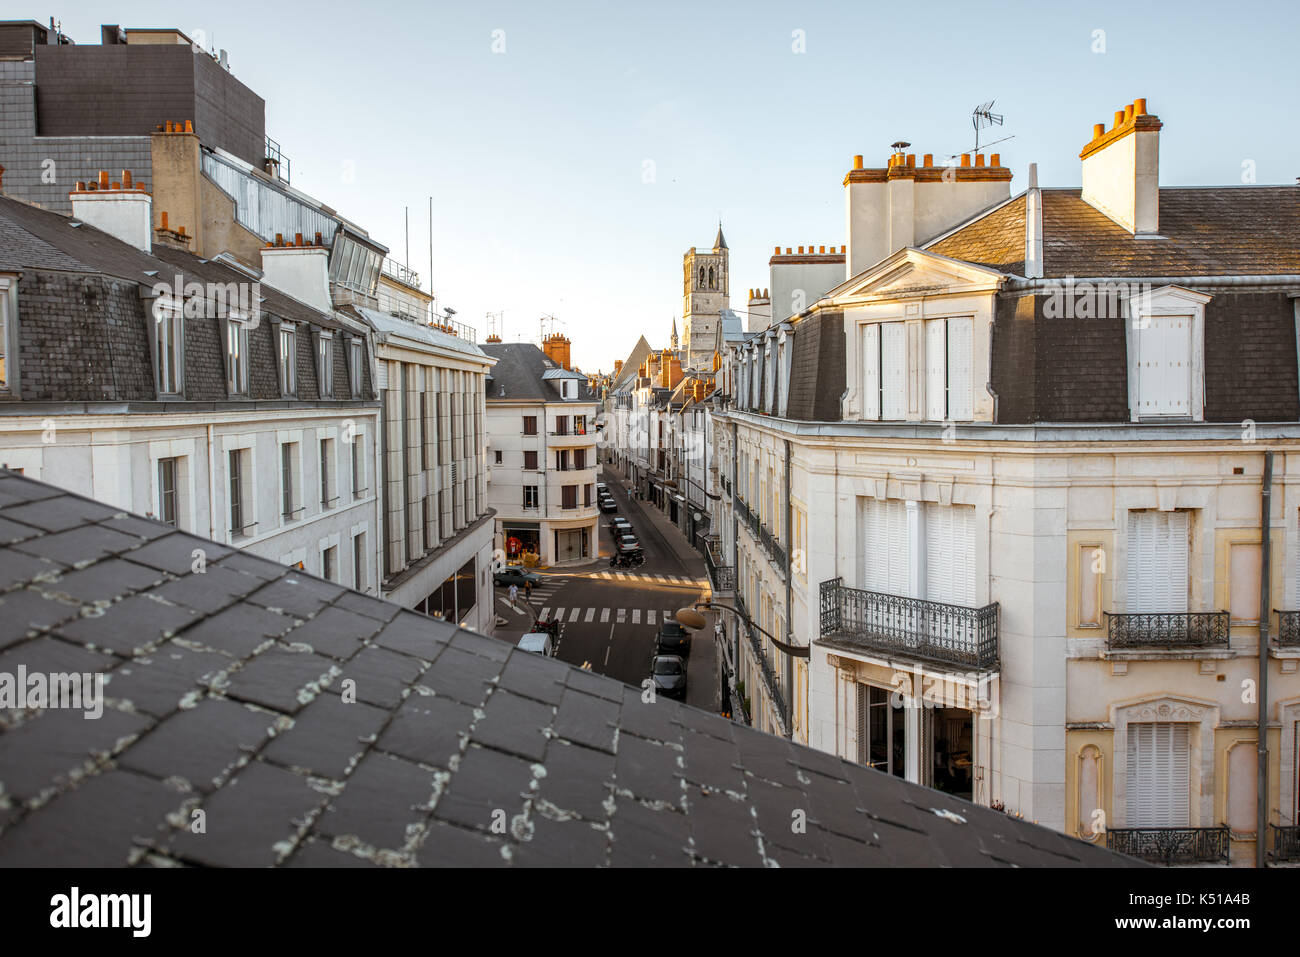 Orleans city in France - Stock Image